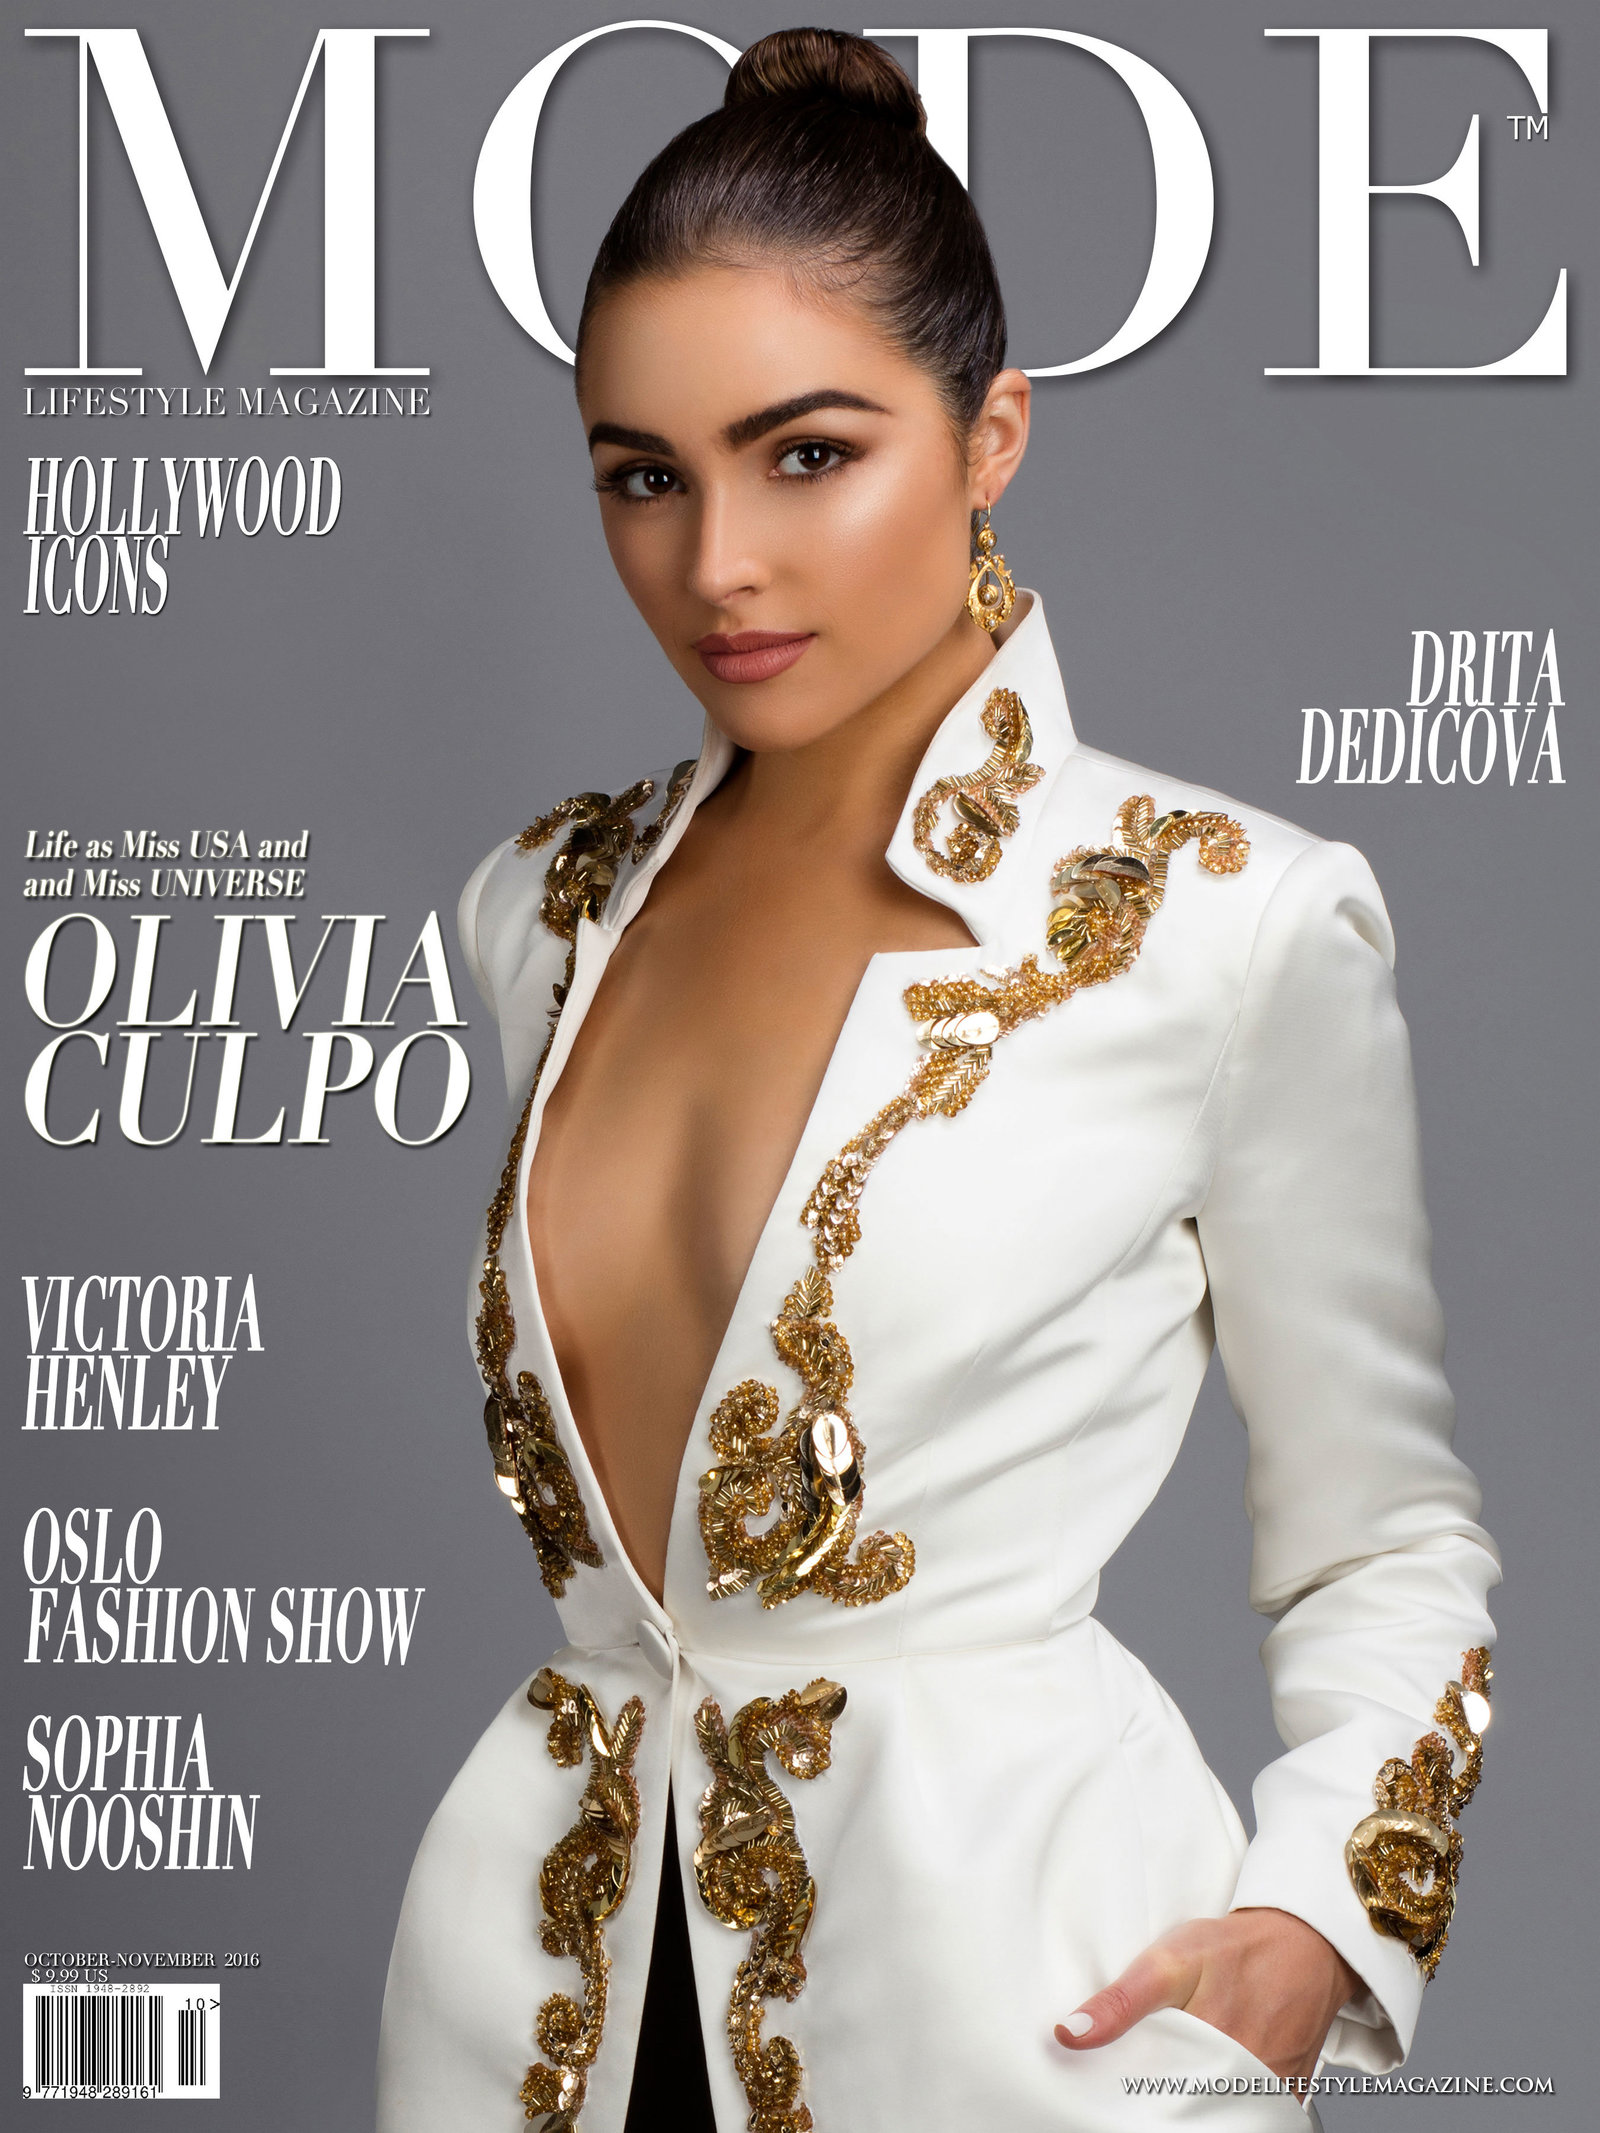 Mode - Olivia Culpo by Terry Check Cover web